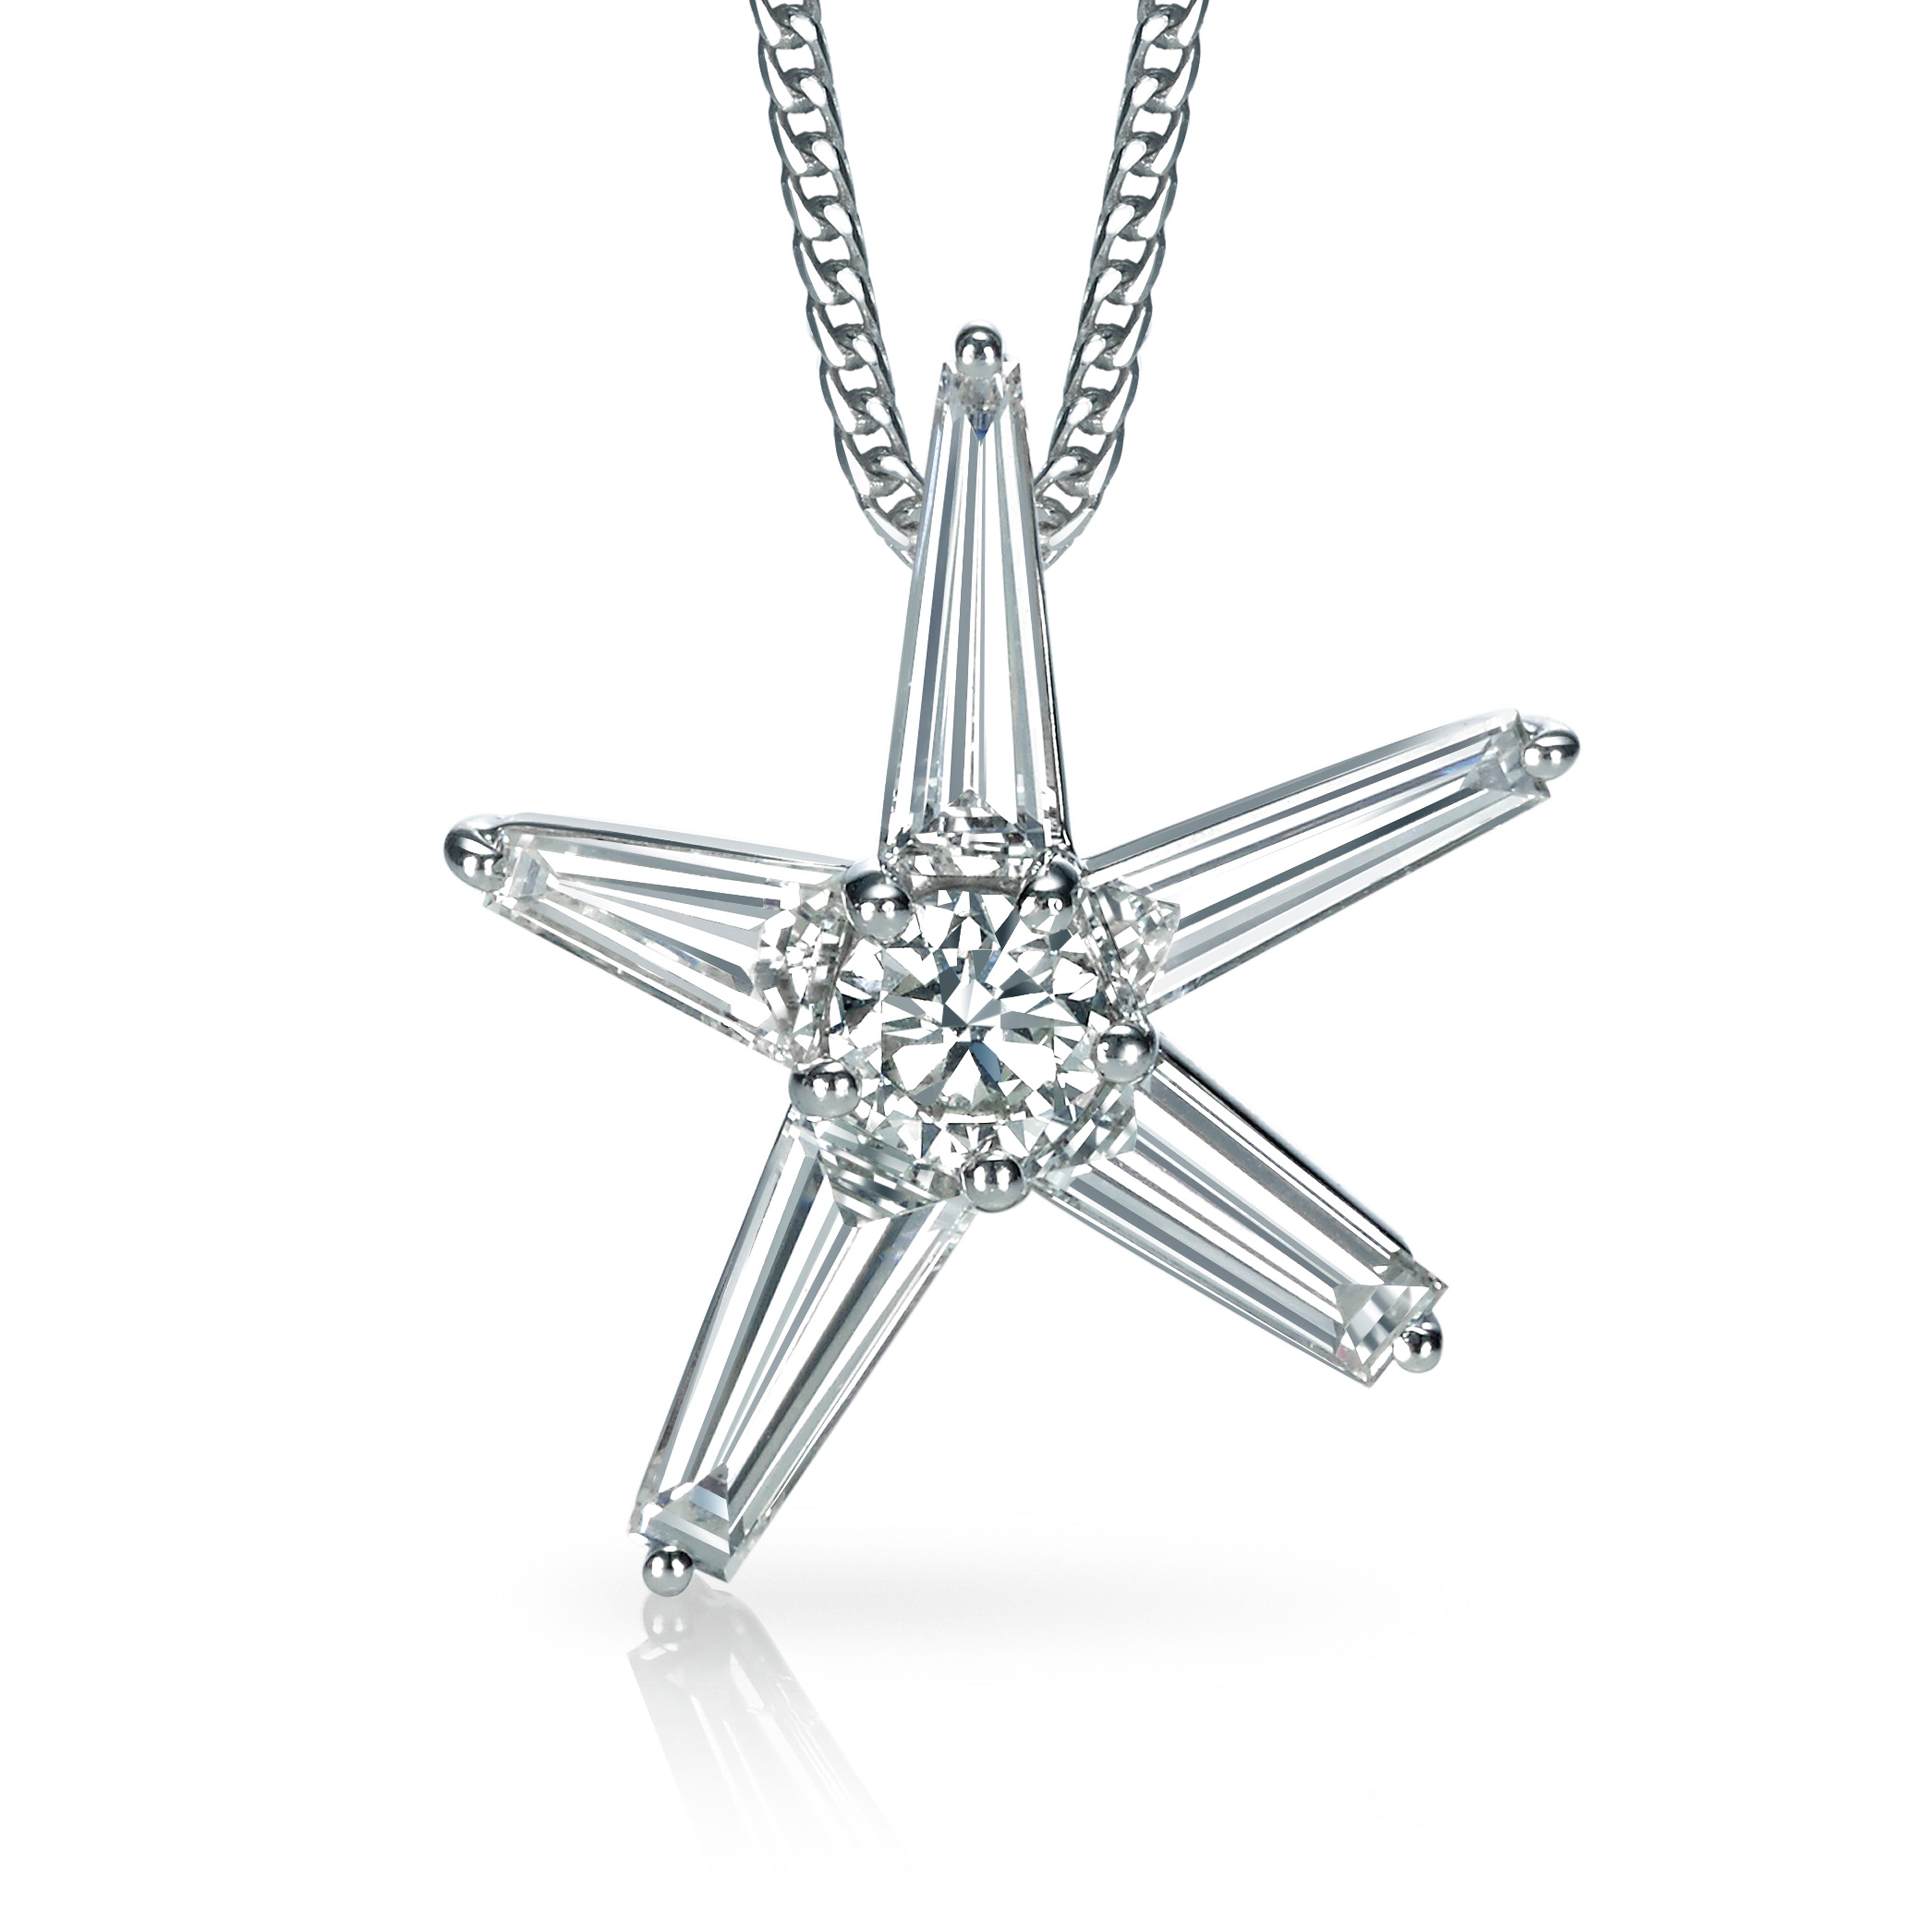 North Star Diamond Pendant Necklace